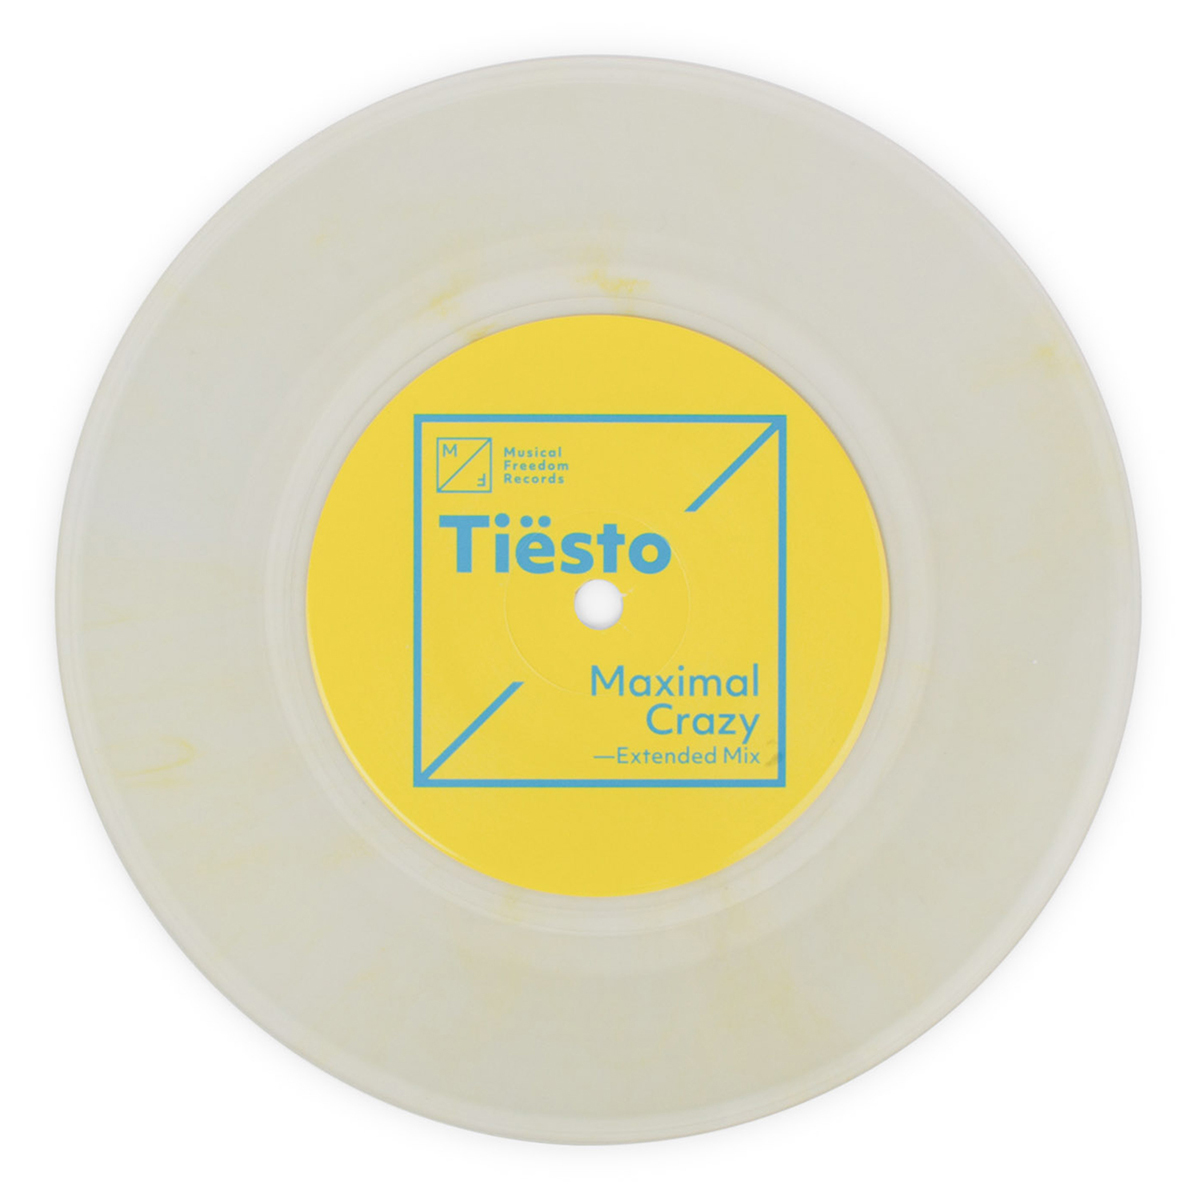 "Tiësto 'Maximal Crazy' Single - 7"" Vinyl"